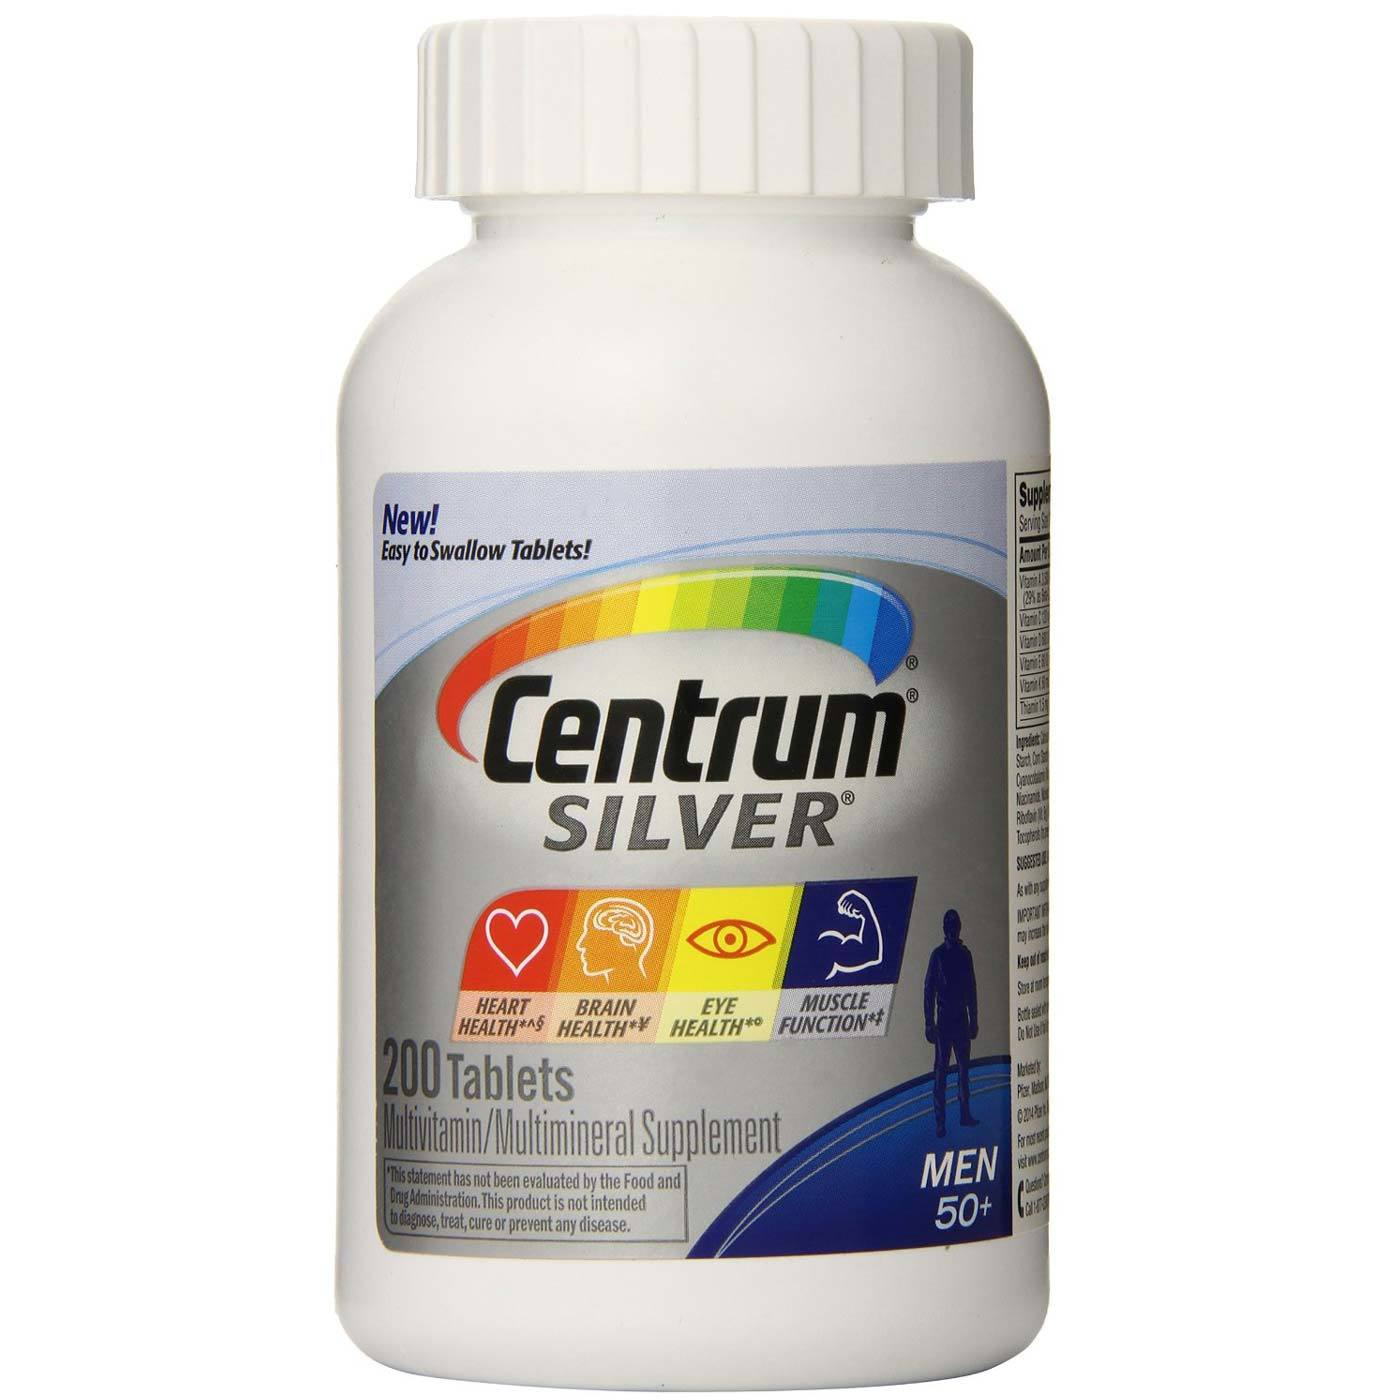 Centrum Silver Men's 50+ Multivitamin - 200 Tablets